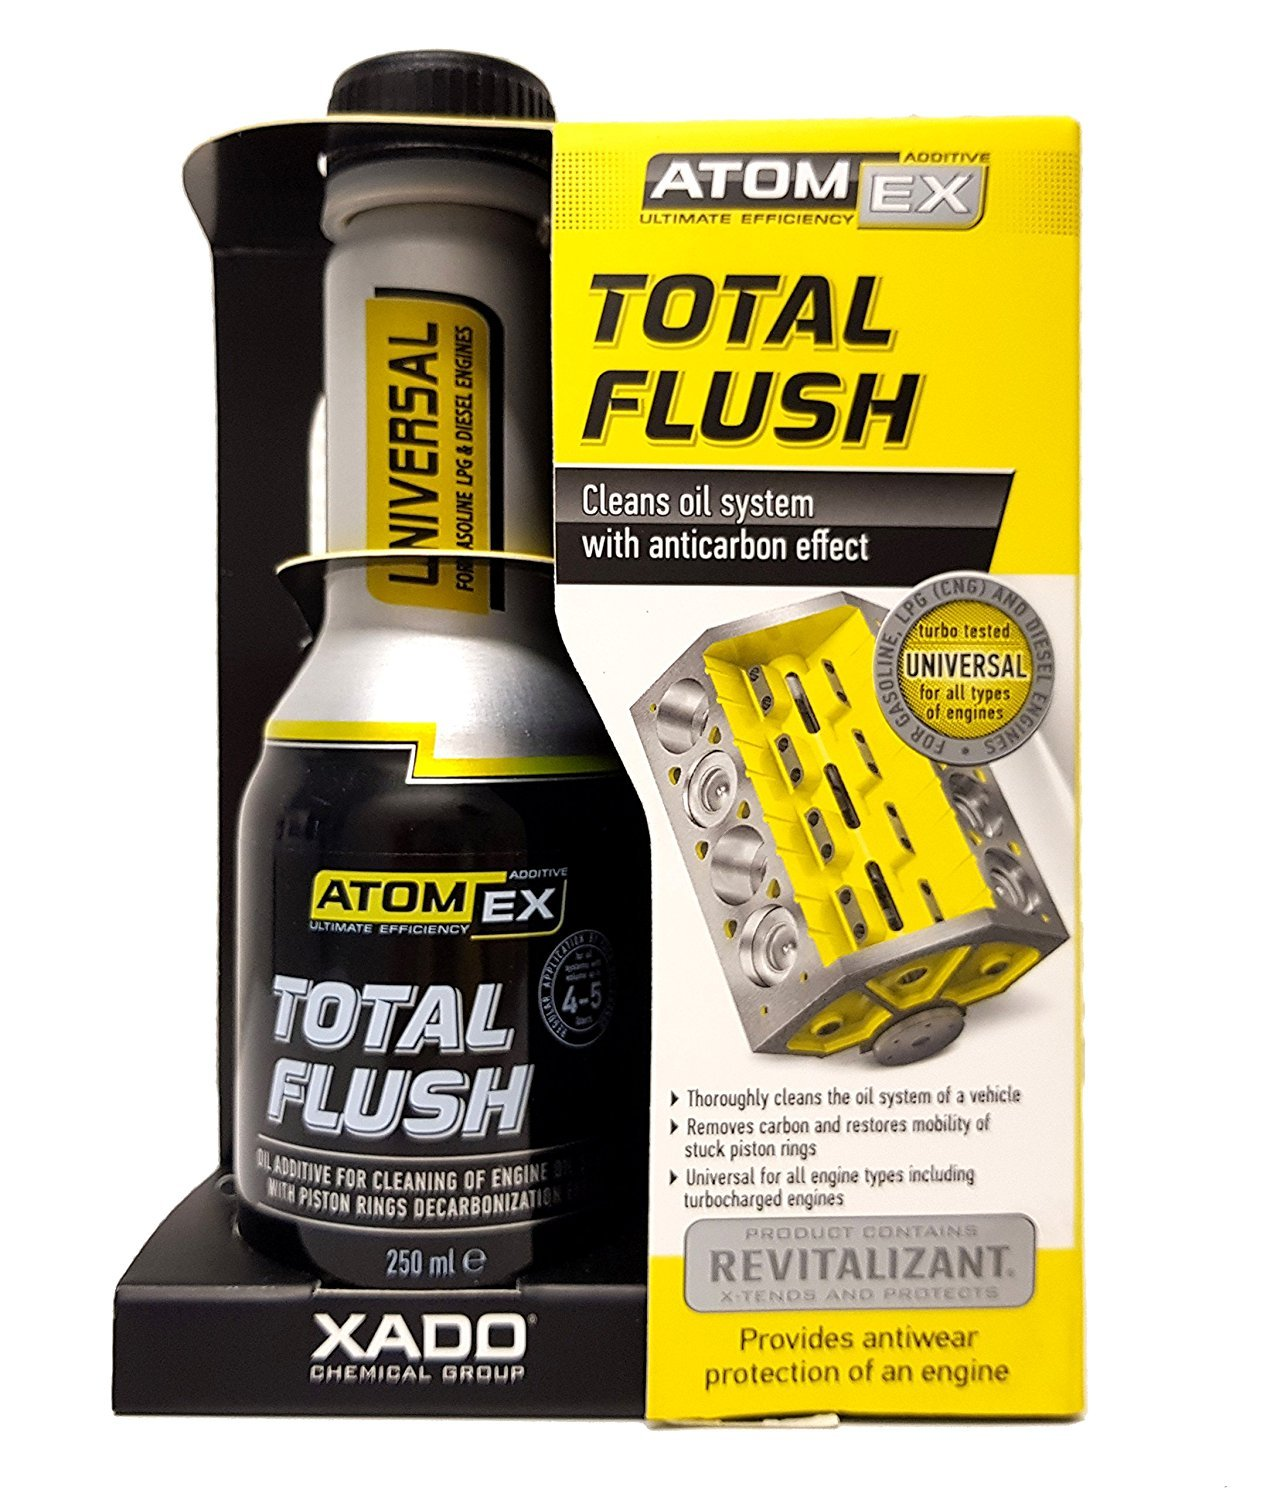 XADO Engine Oil System Cleaner with Piston Rings Anticarbon Effect - Removes Contamination - ATOMEX Total Flush Revitalizant by XADO